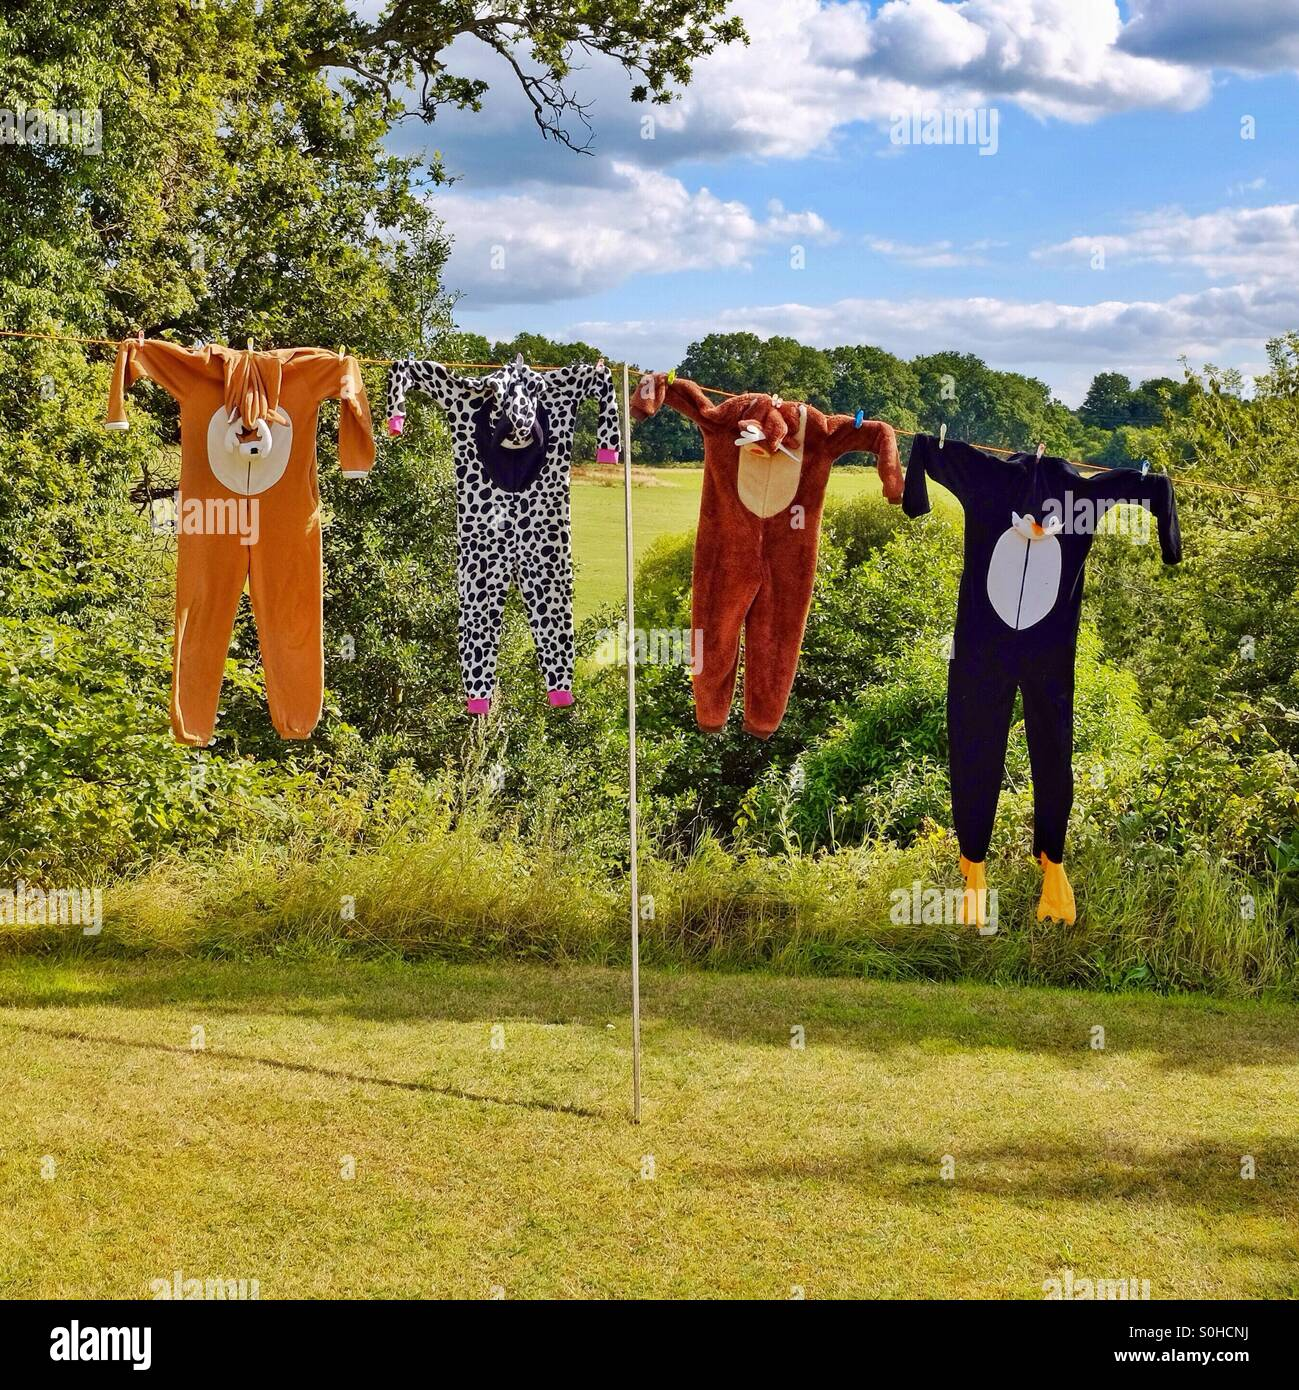 The onesie family - washed animal onesies drying on the clothes line resembling hunted animal skin trophies - Stock Image